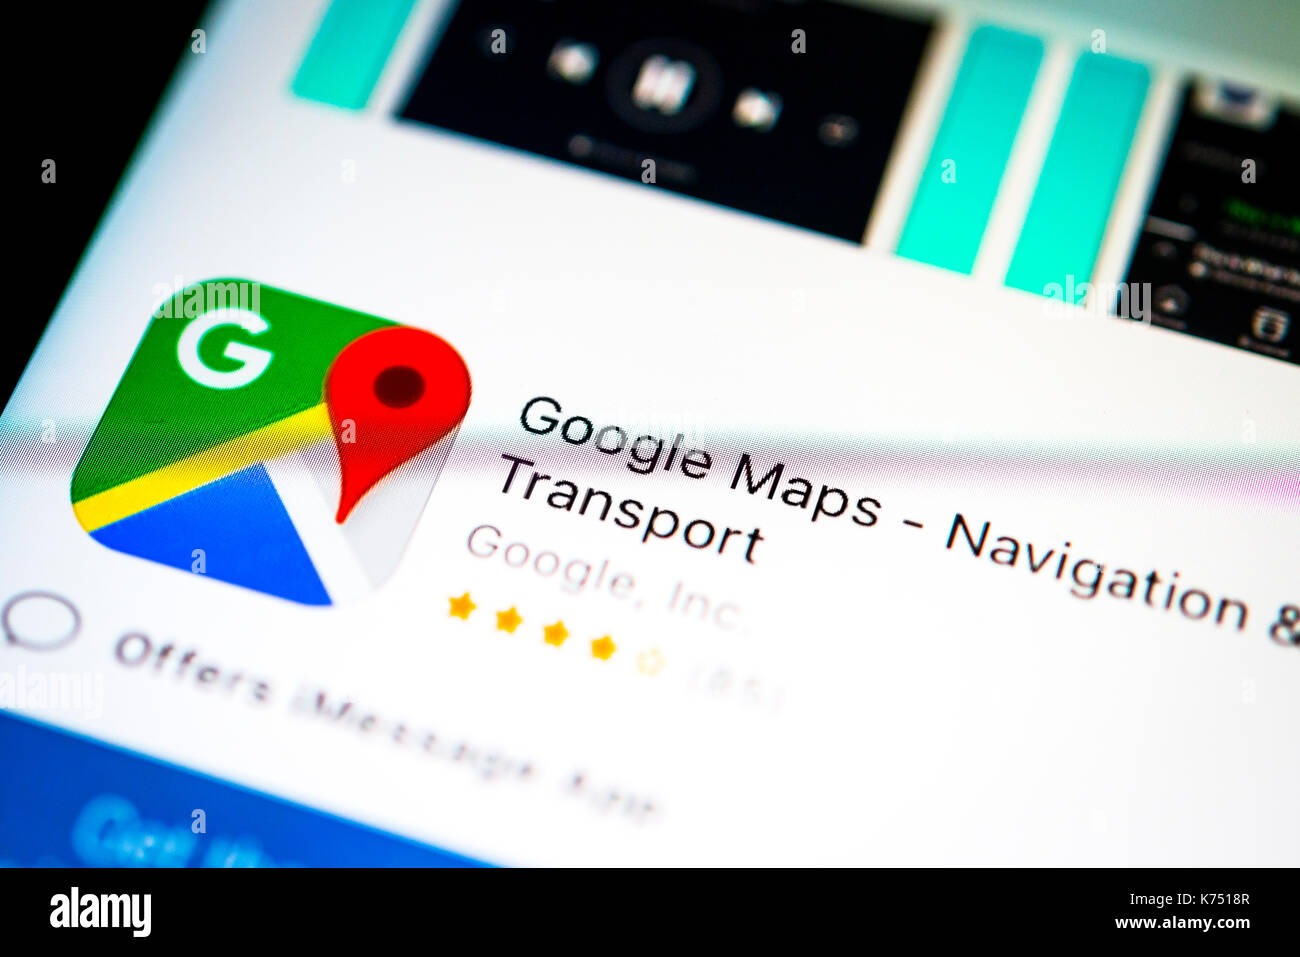 Google Maps App in the Apple App Store, navigation, app icon ... on ios store, windows 8 store, map search, google store, map google, map app talk, iphone store, map my walk app, map bing, map weather, map design, map pins app,